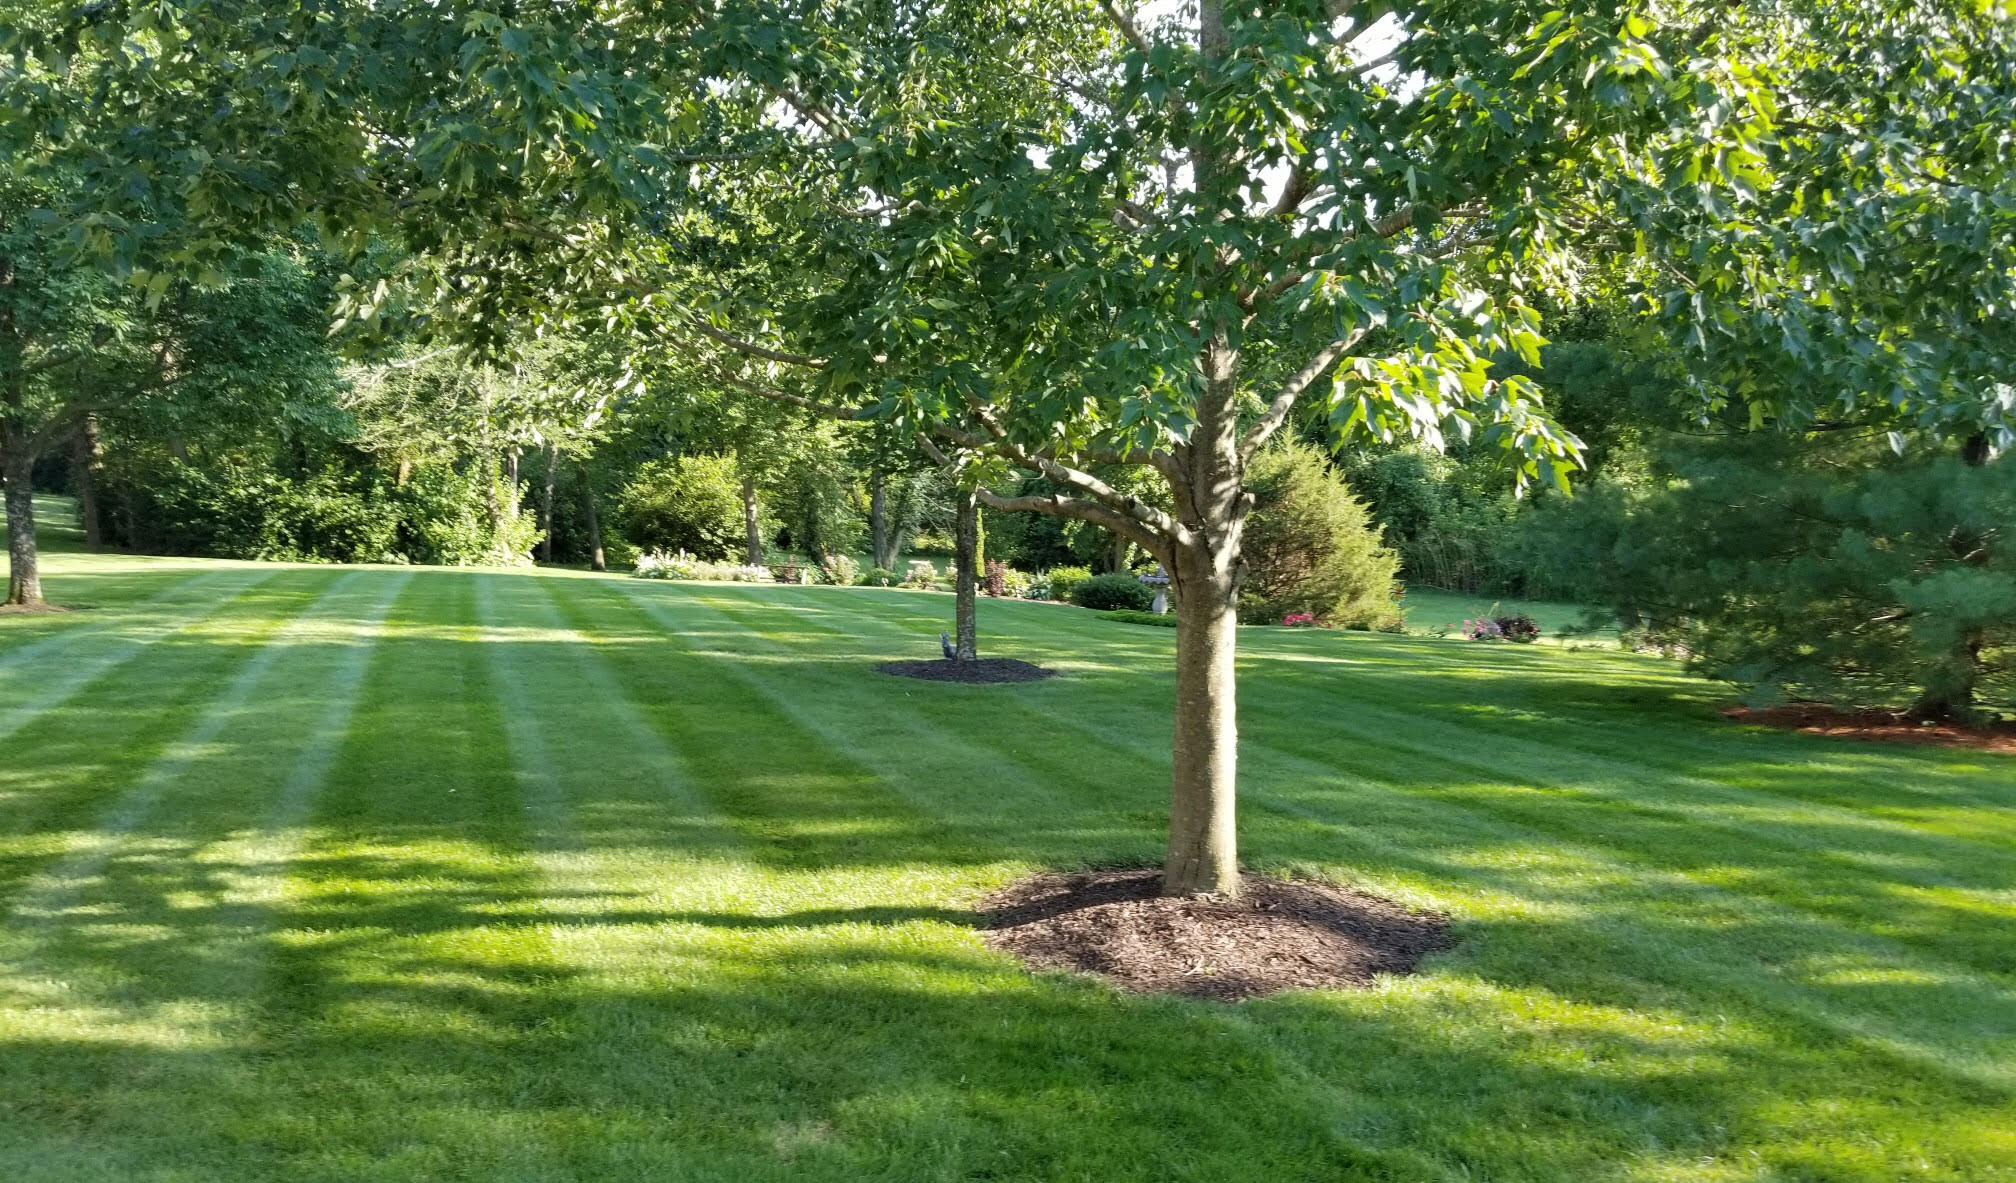 Organic Lawn Care - The Advantages and Disadvantages